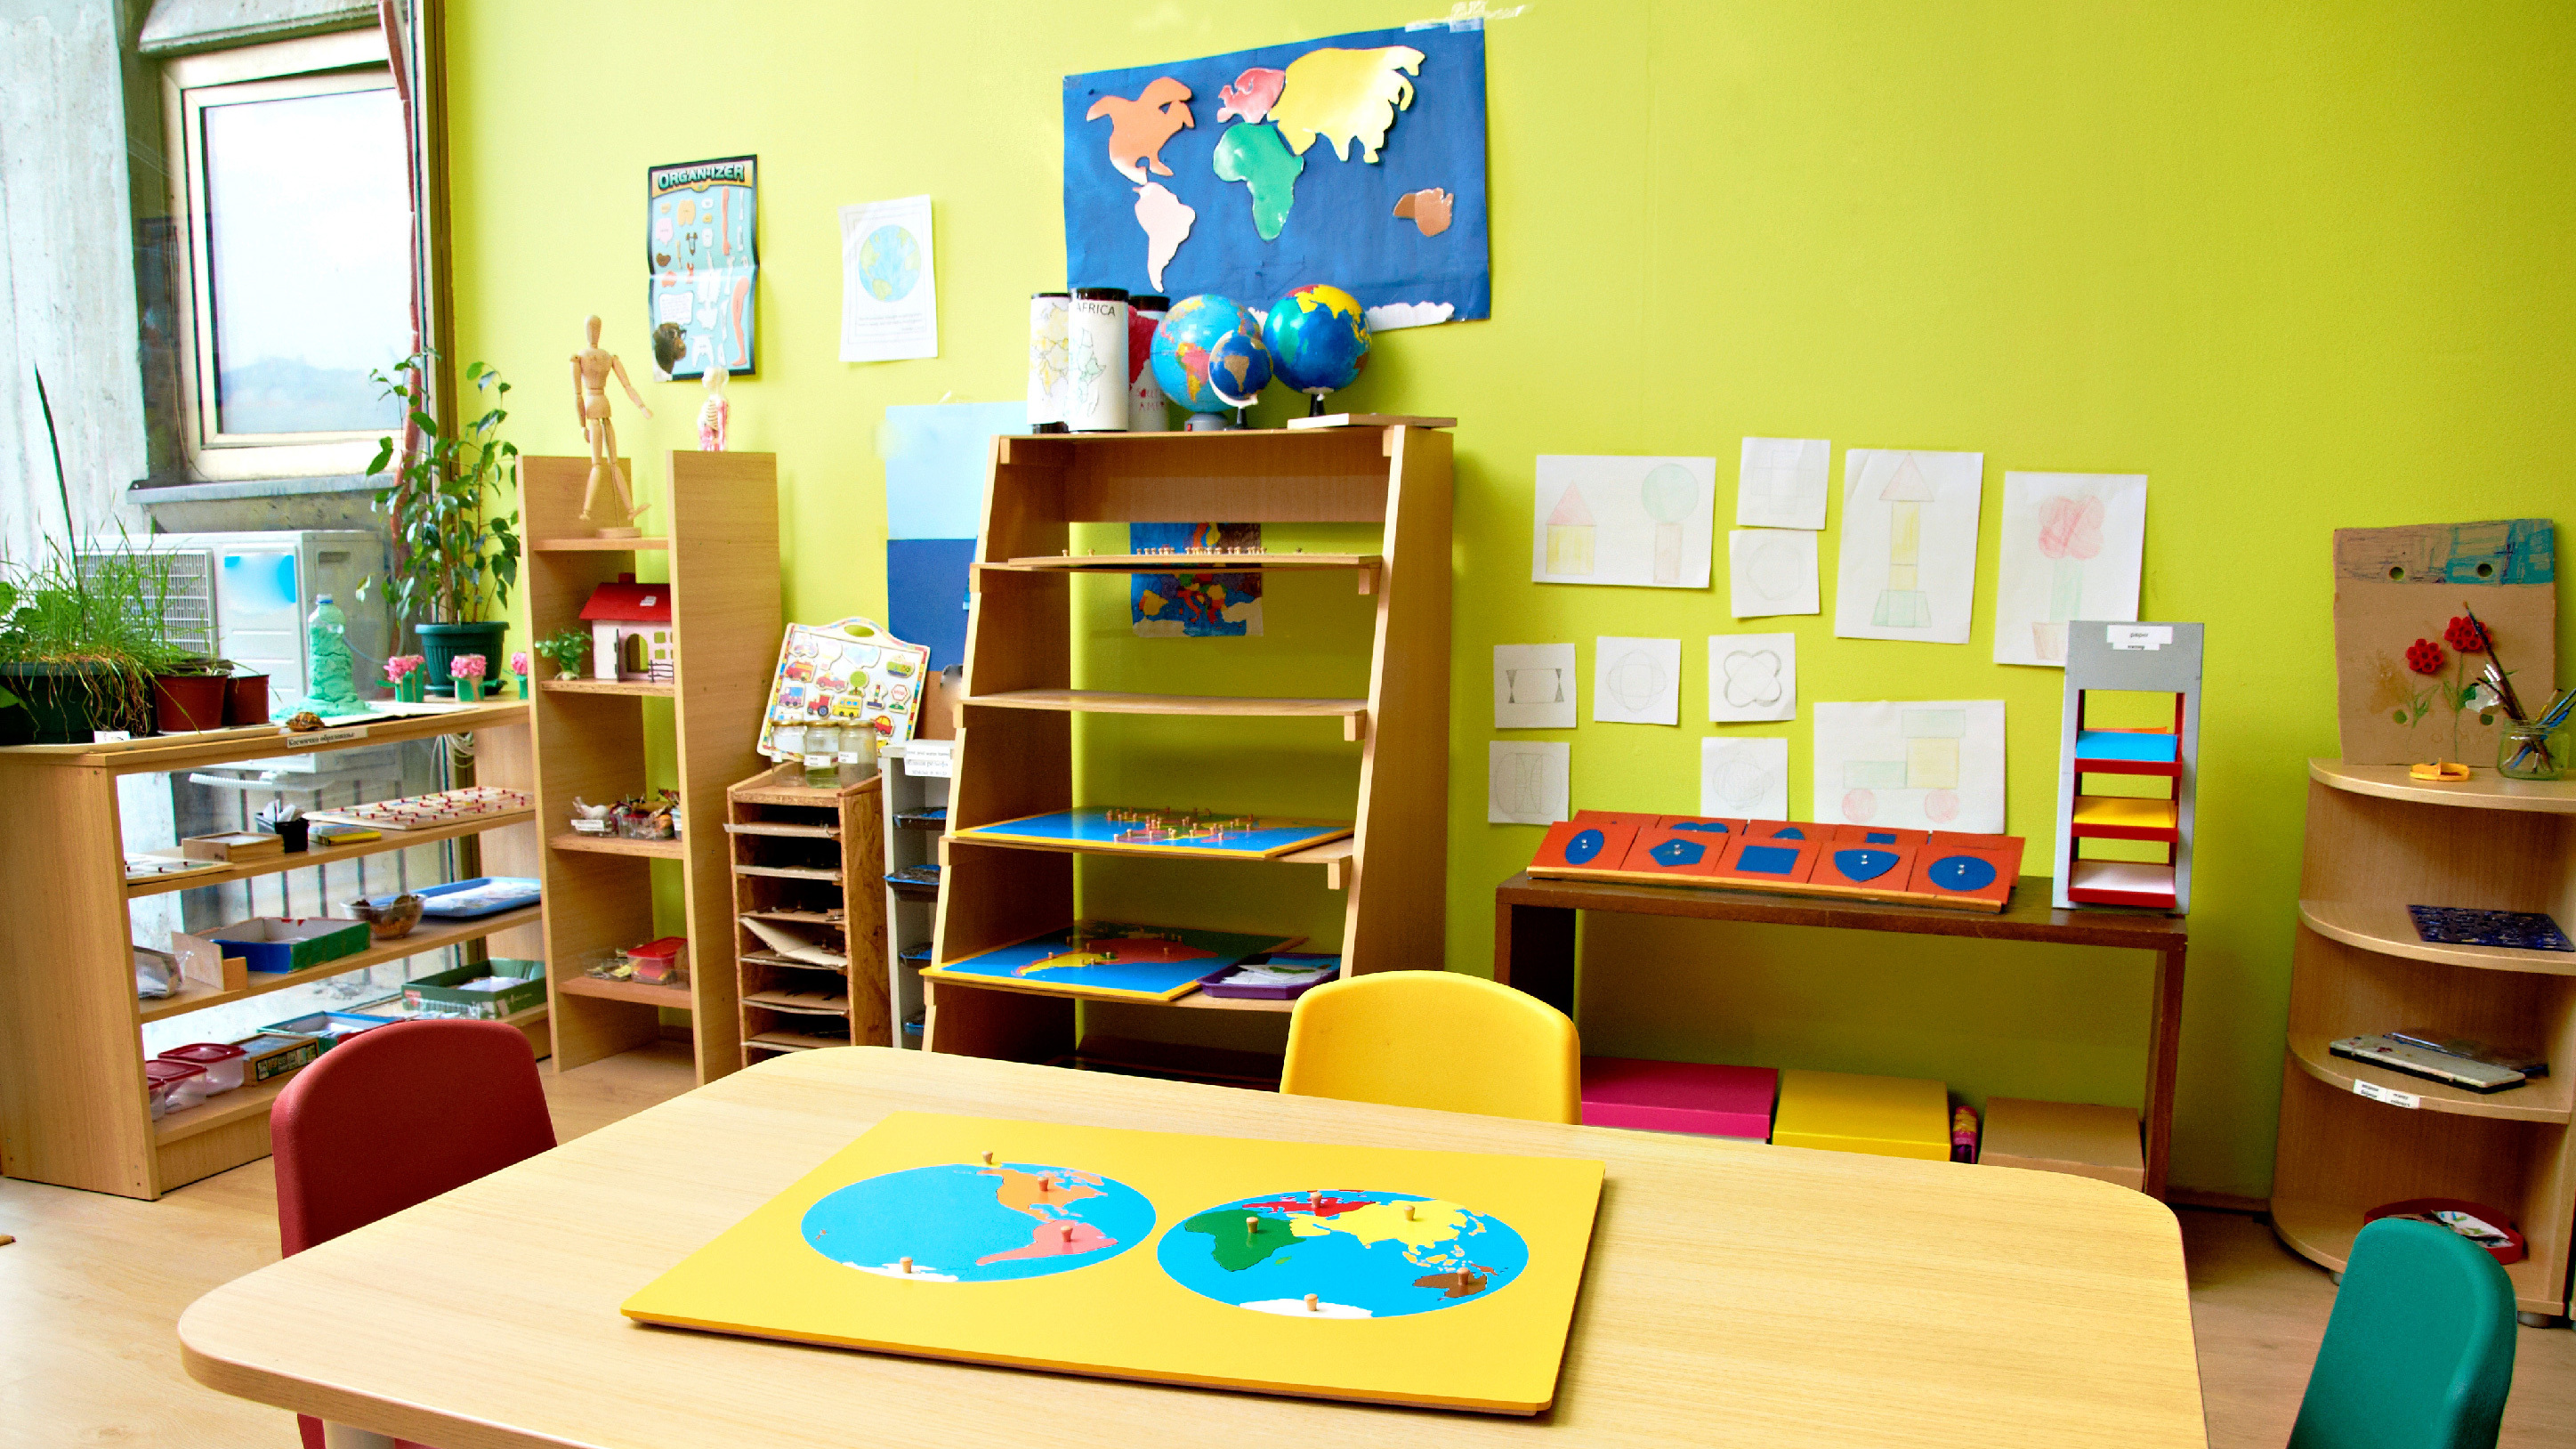 Preschool And Privilege: When Early Education Hinges On Parental Flexibility